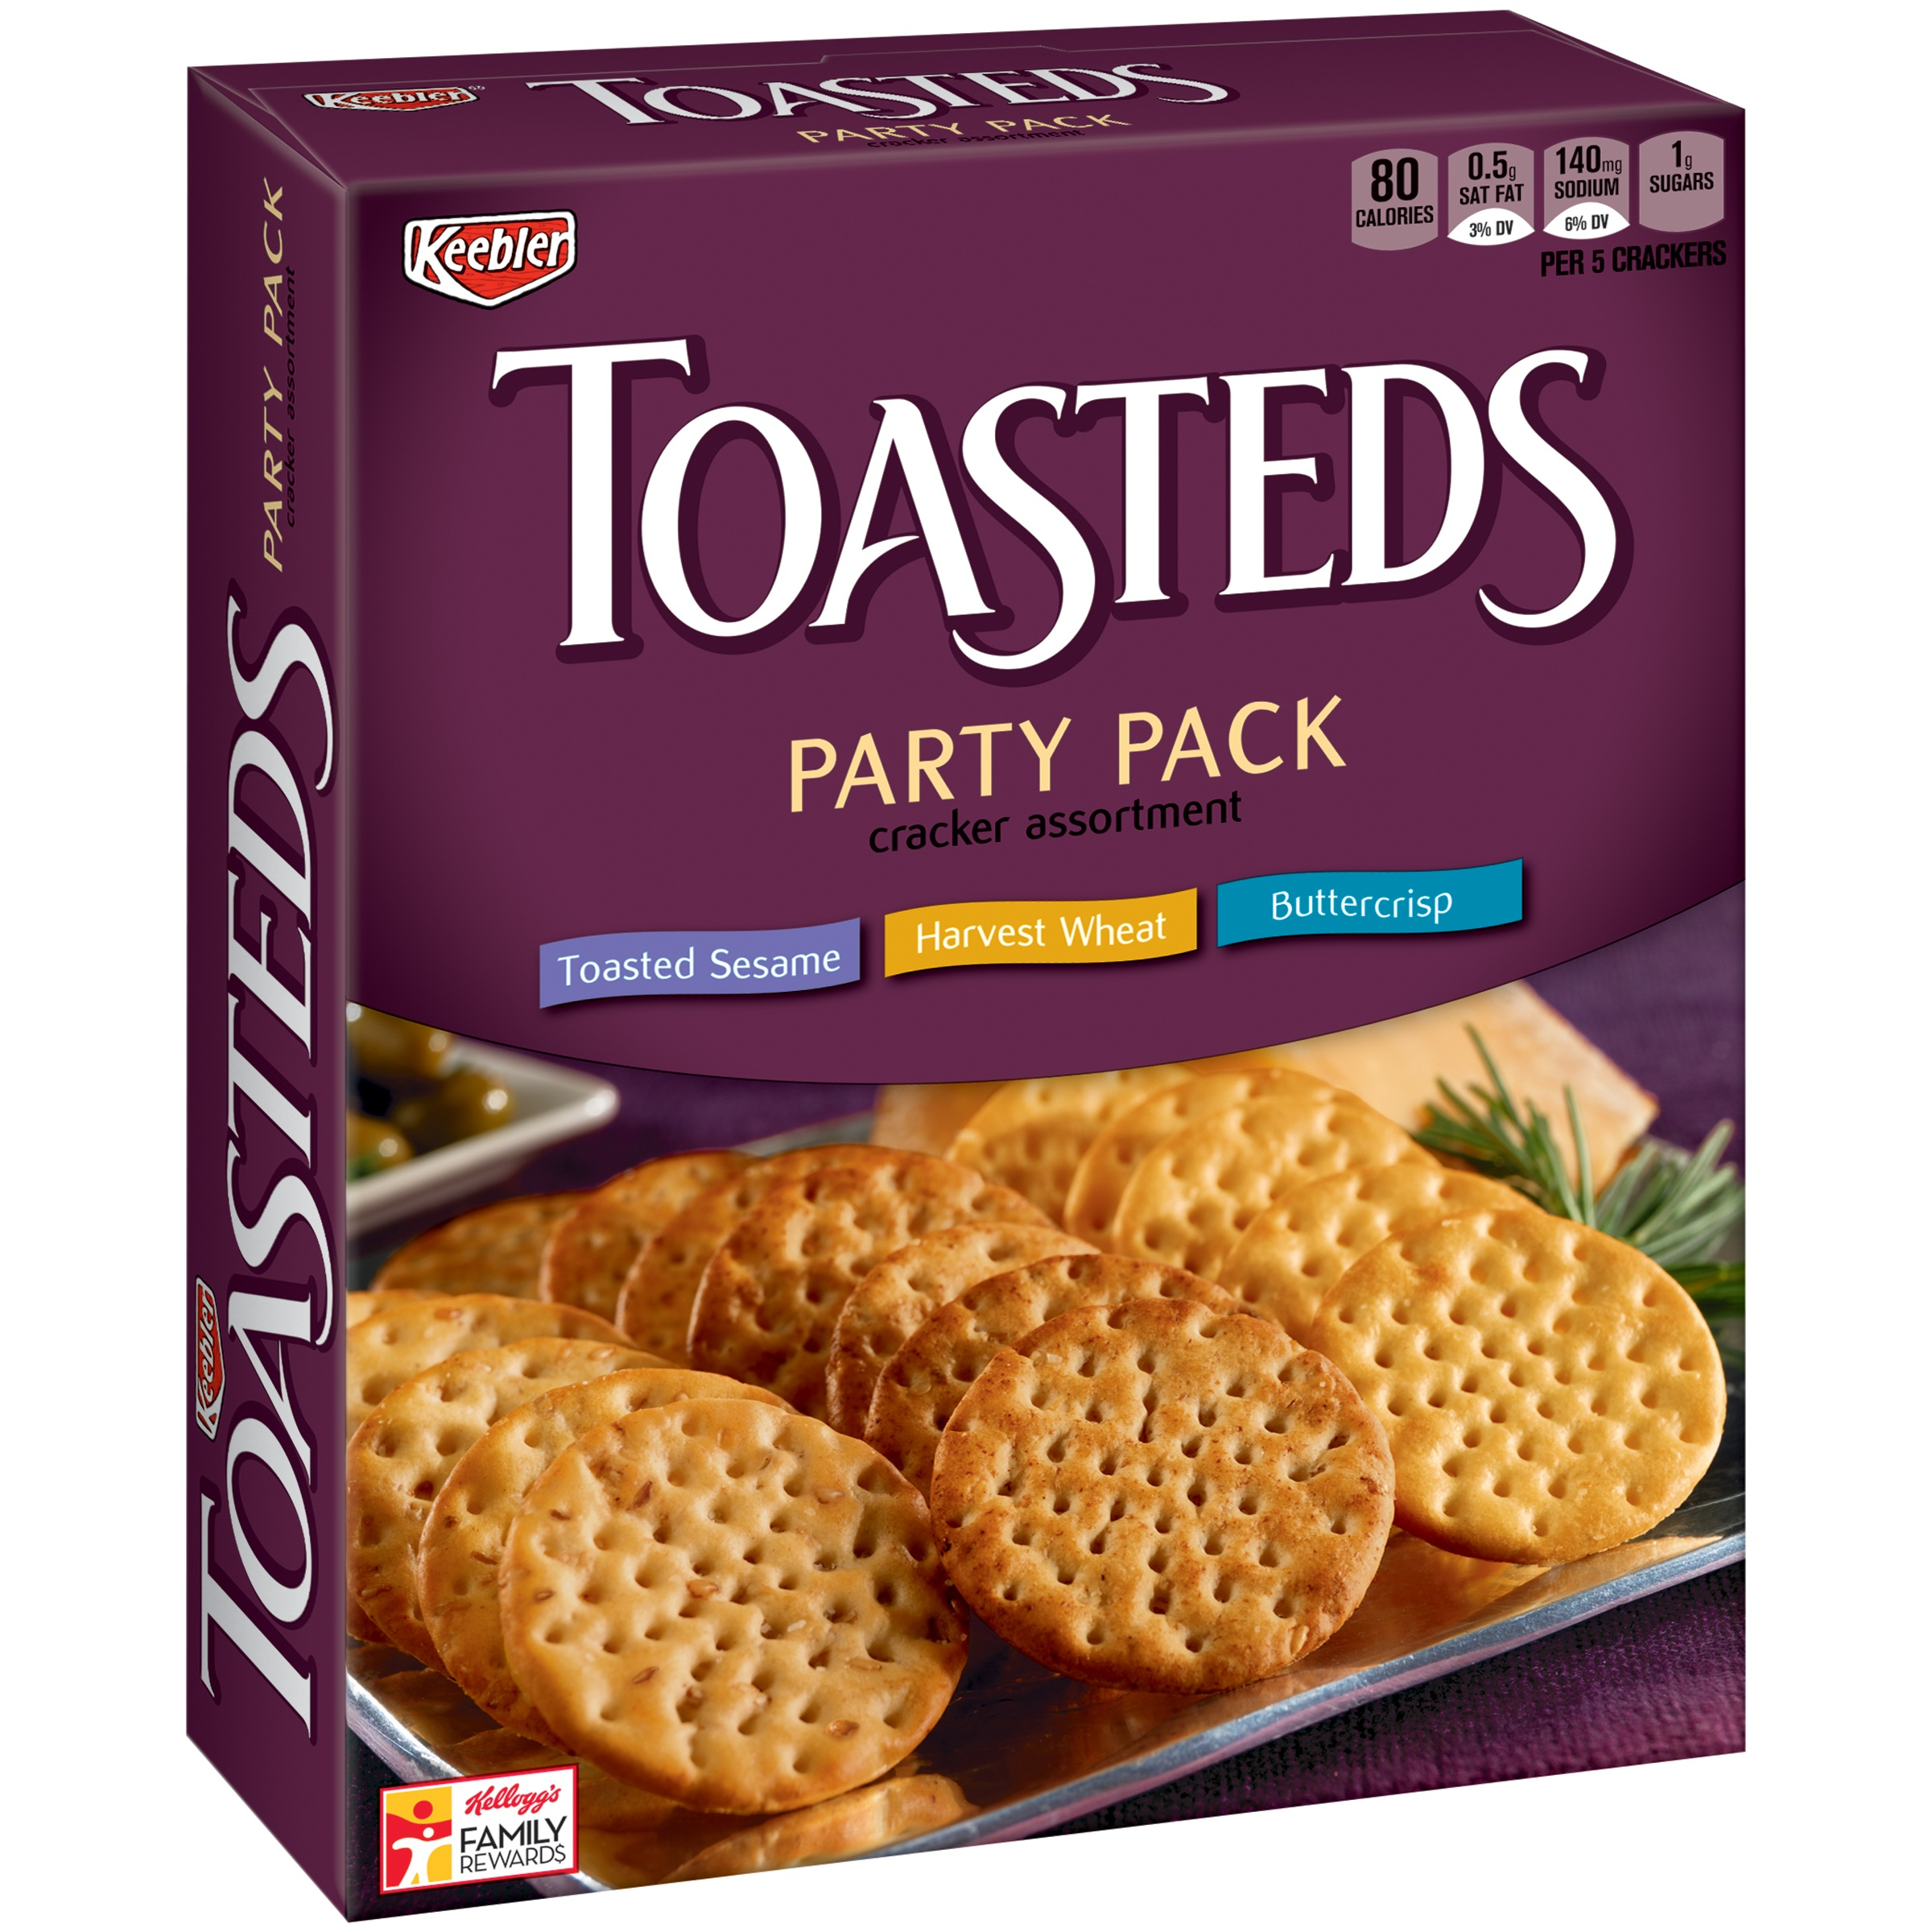 Keebler Toasteds Cracker Assortment Party Pack, 12 oz